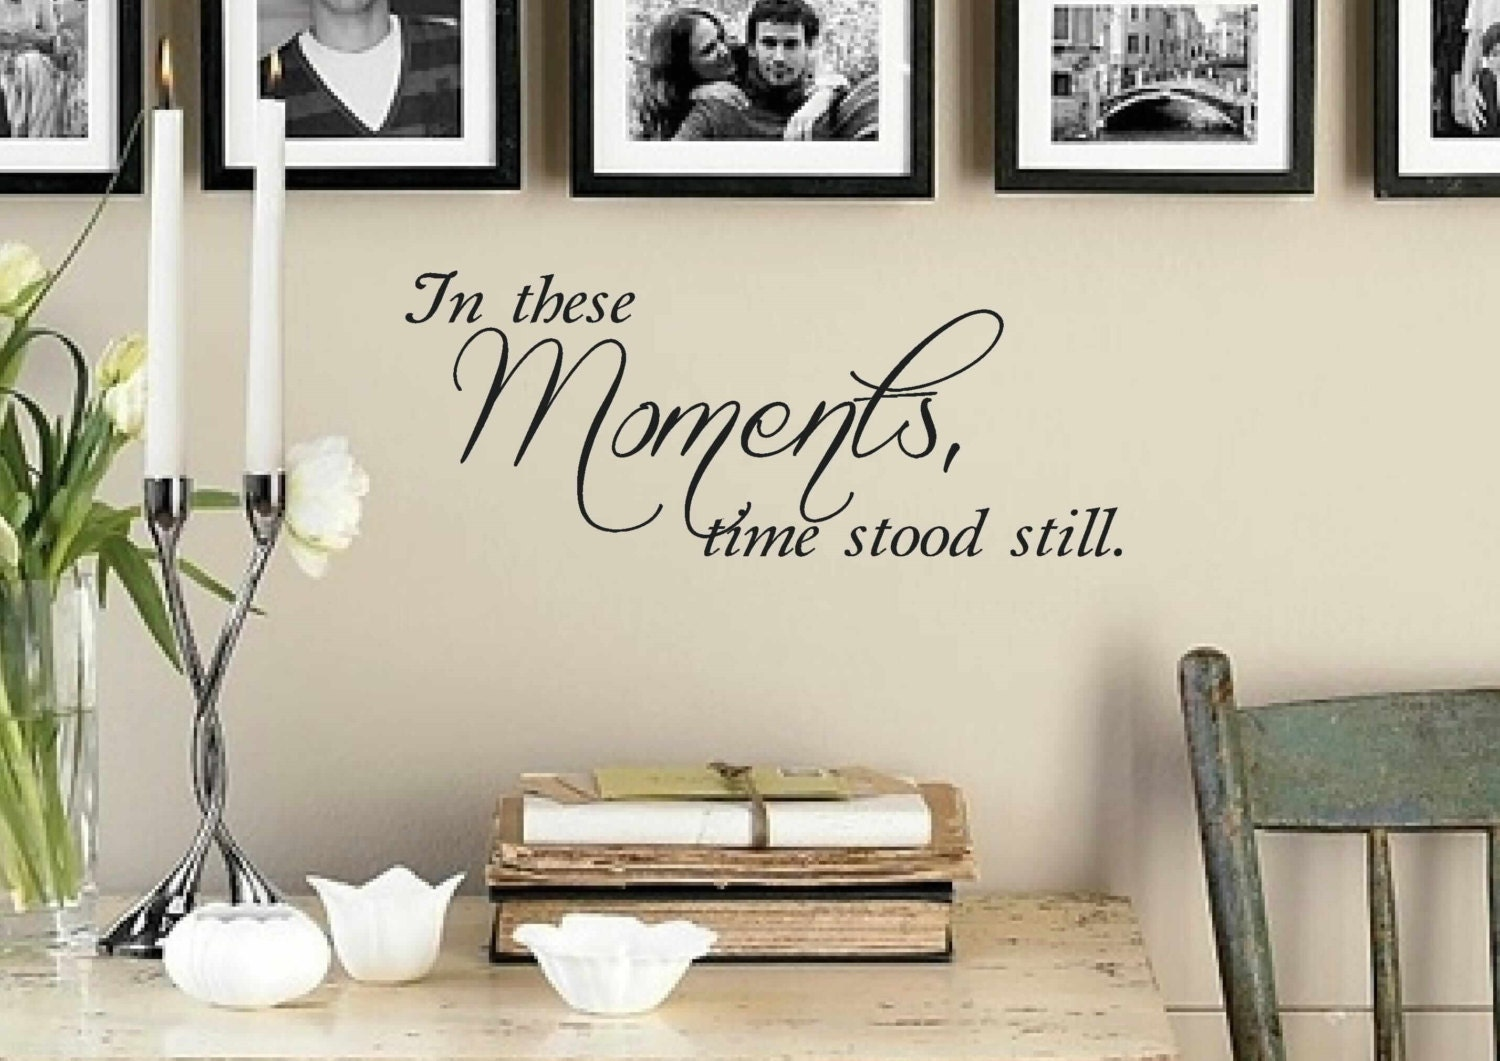 In These Moments Time Stood Still Wall Decal Vinyl Decal - Wall decals entryway